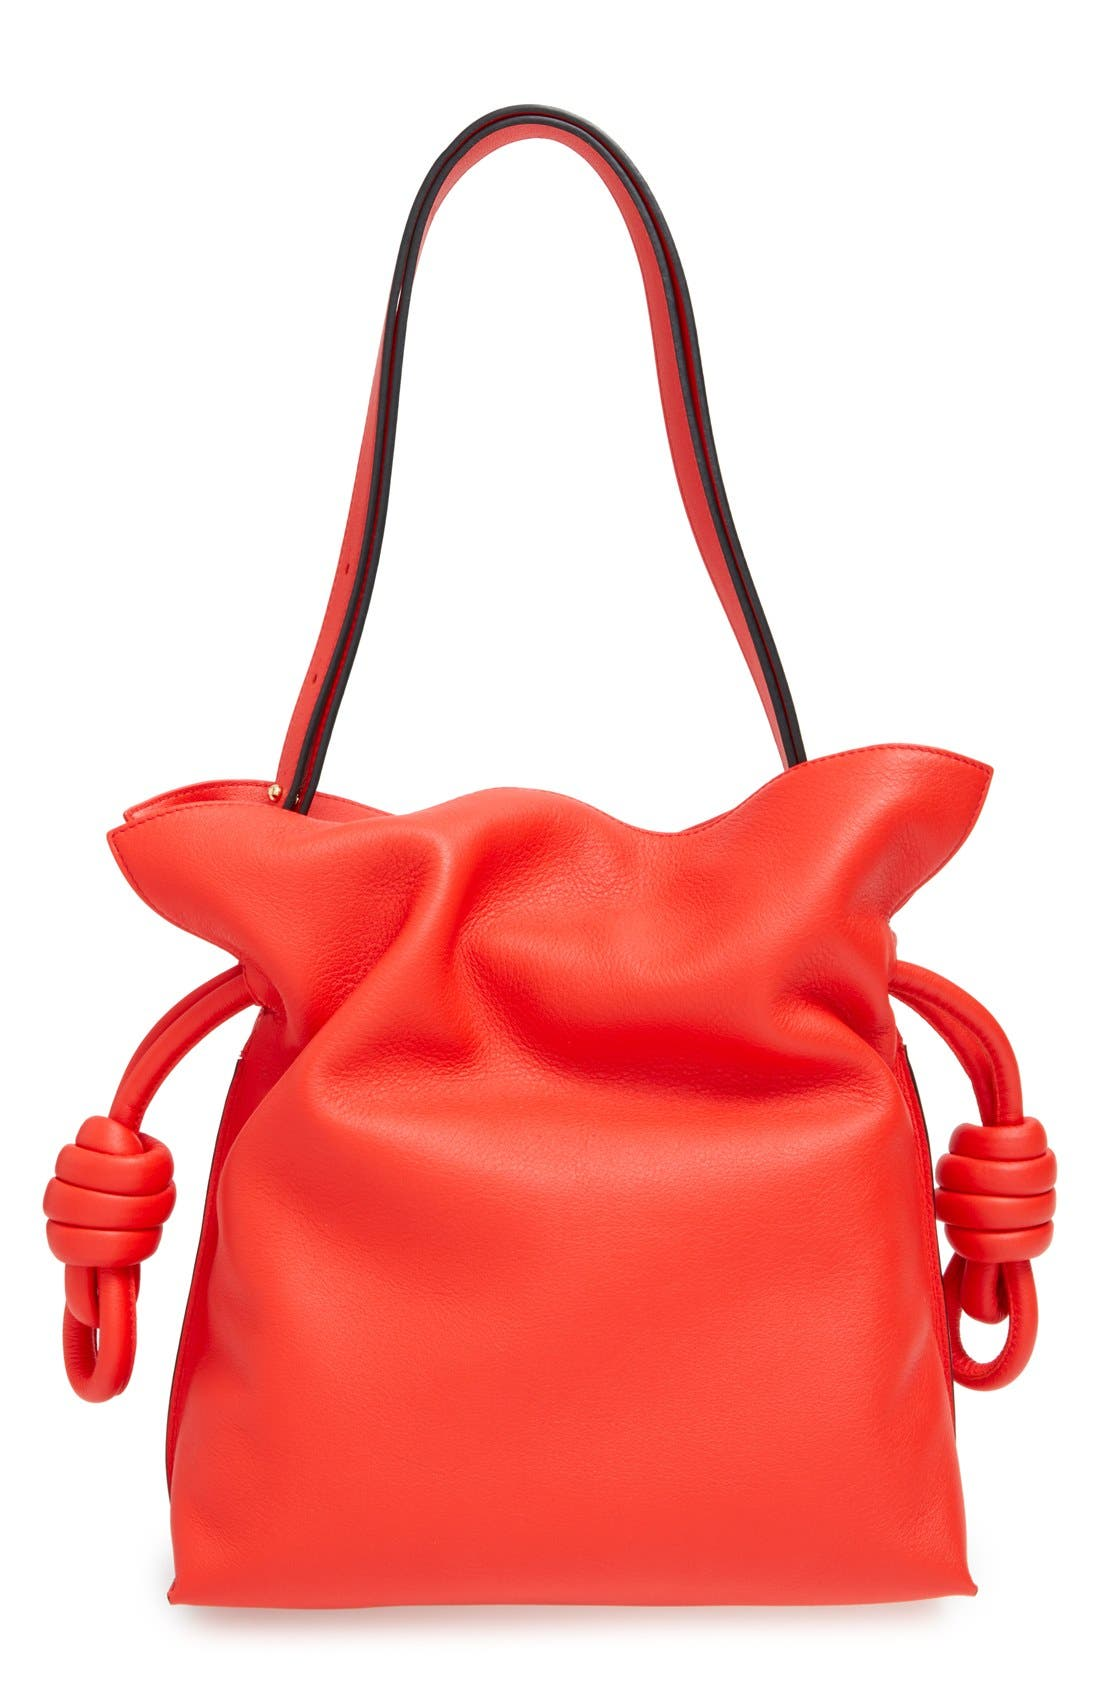 'Small Flamenco Knot' Calfskin Leather Bag,                             Alternate thumbnail 3, color,                             600